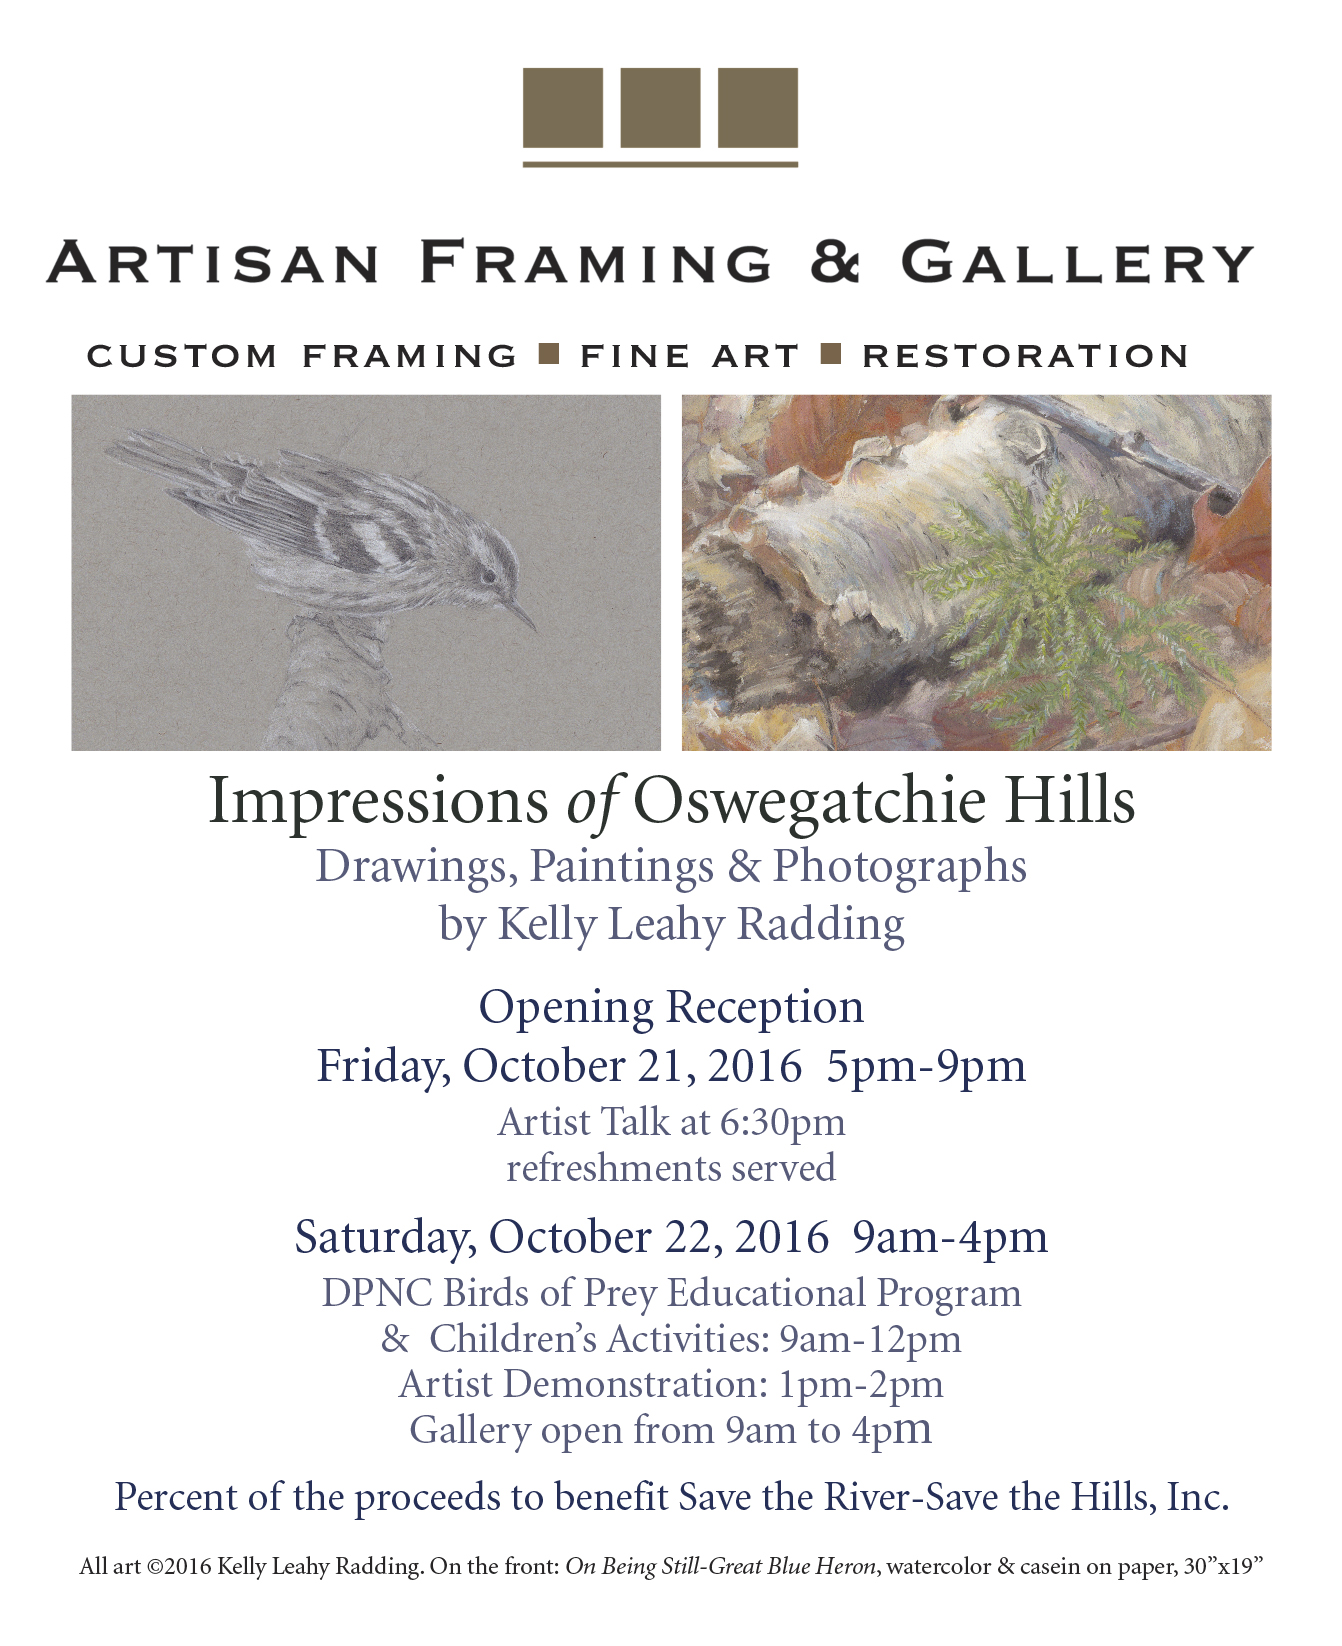 Impressions of Oswegatchie Hills - Artisan Framing & Gallery